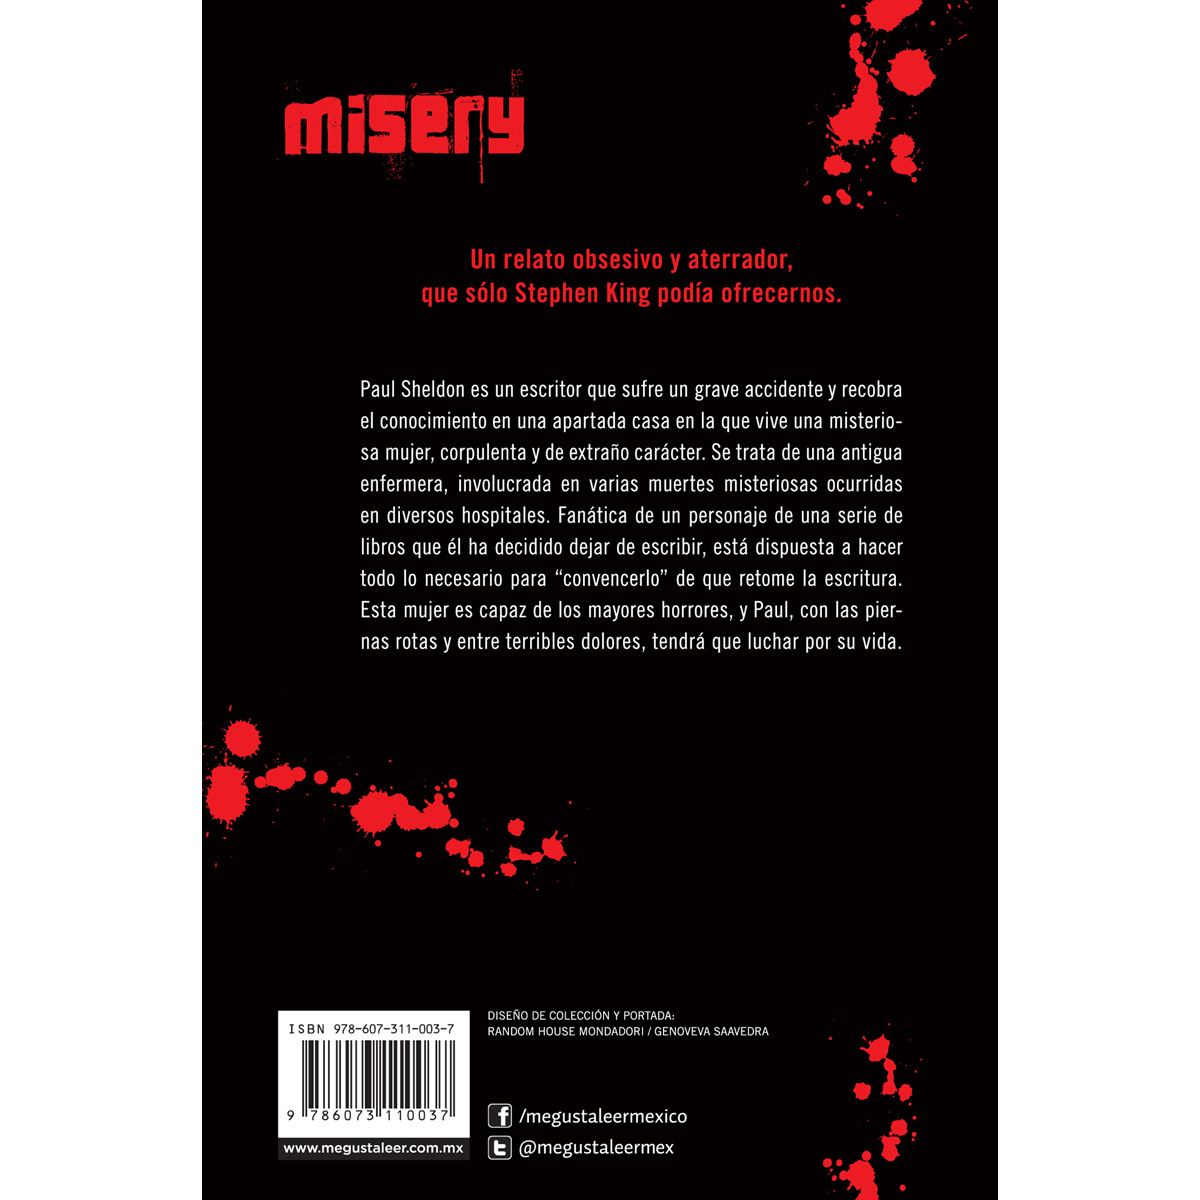 Misery Libro - Sanborns